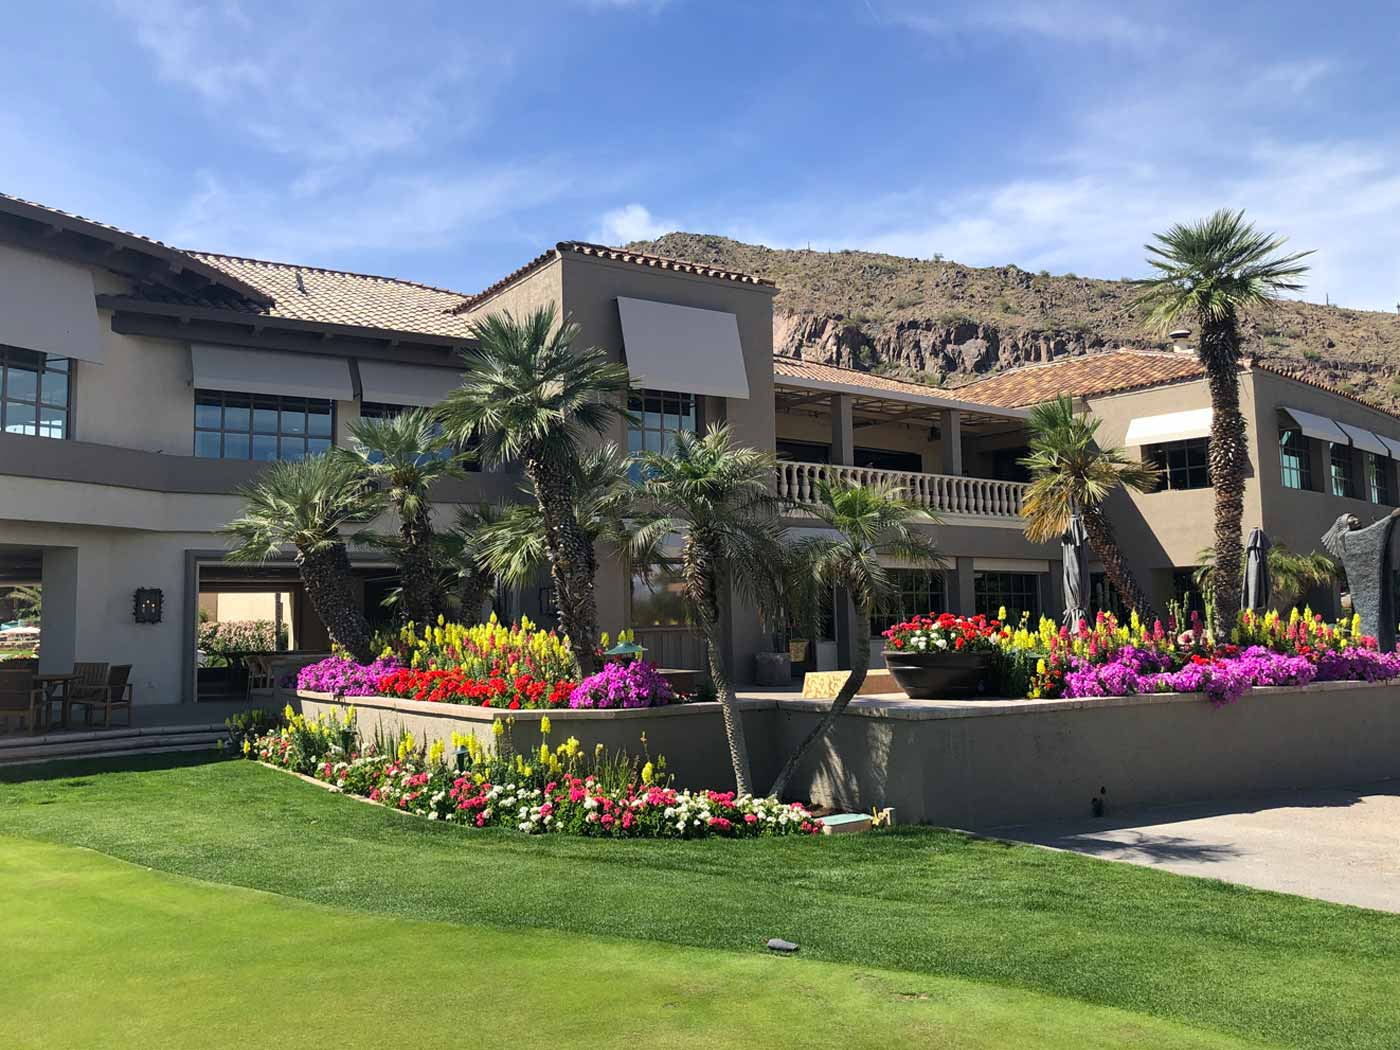 19th Hole restaurant at The Phoenician Golf Course